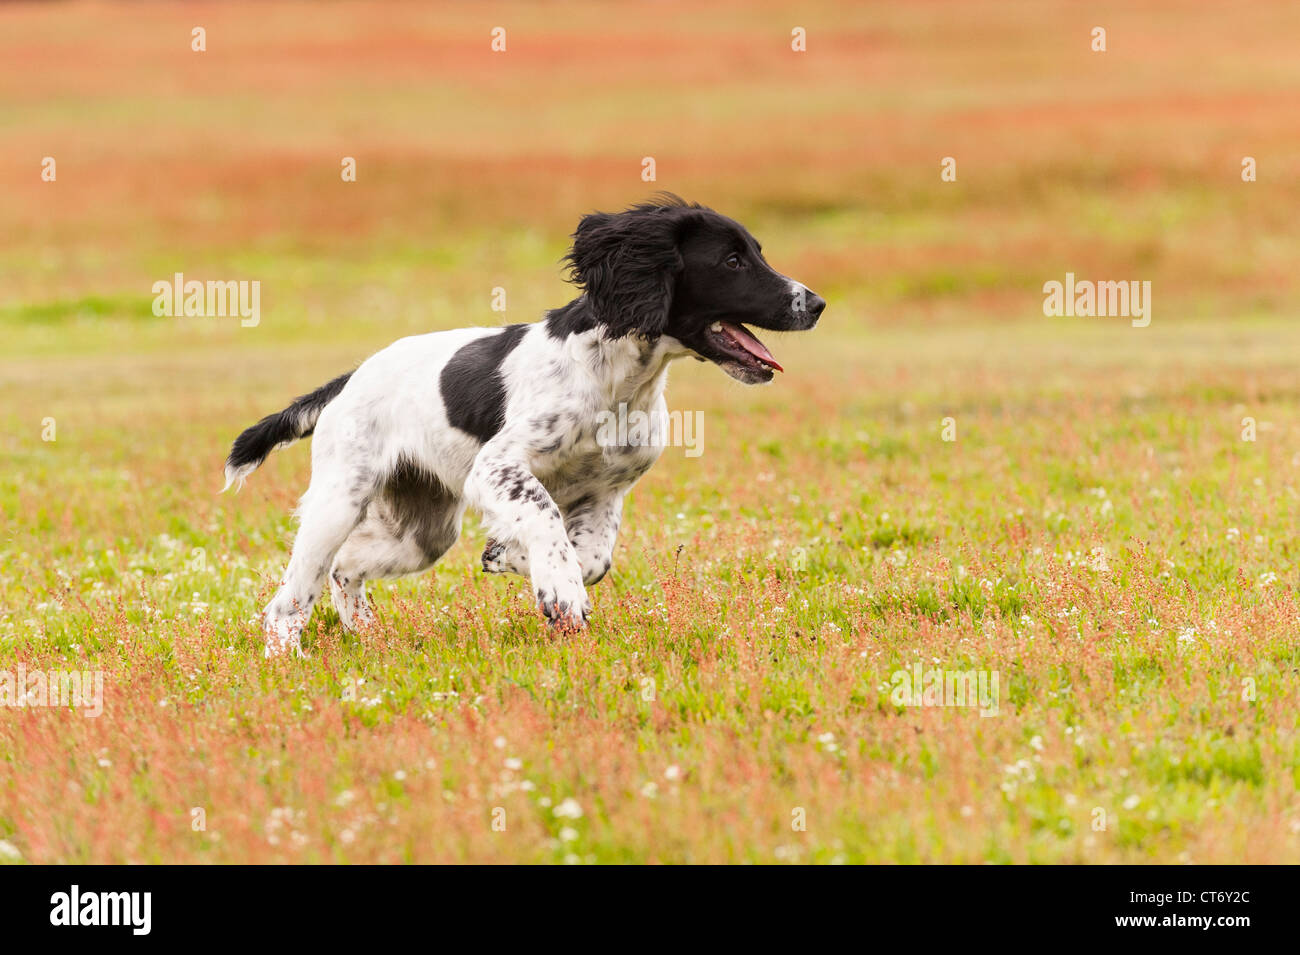 A 5 month old young English Springer Spaniel dog running in a field showing movement - Stock Image